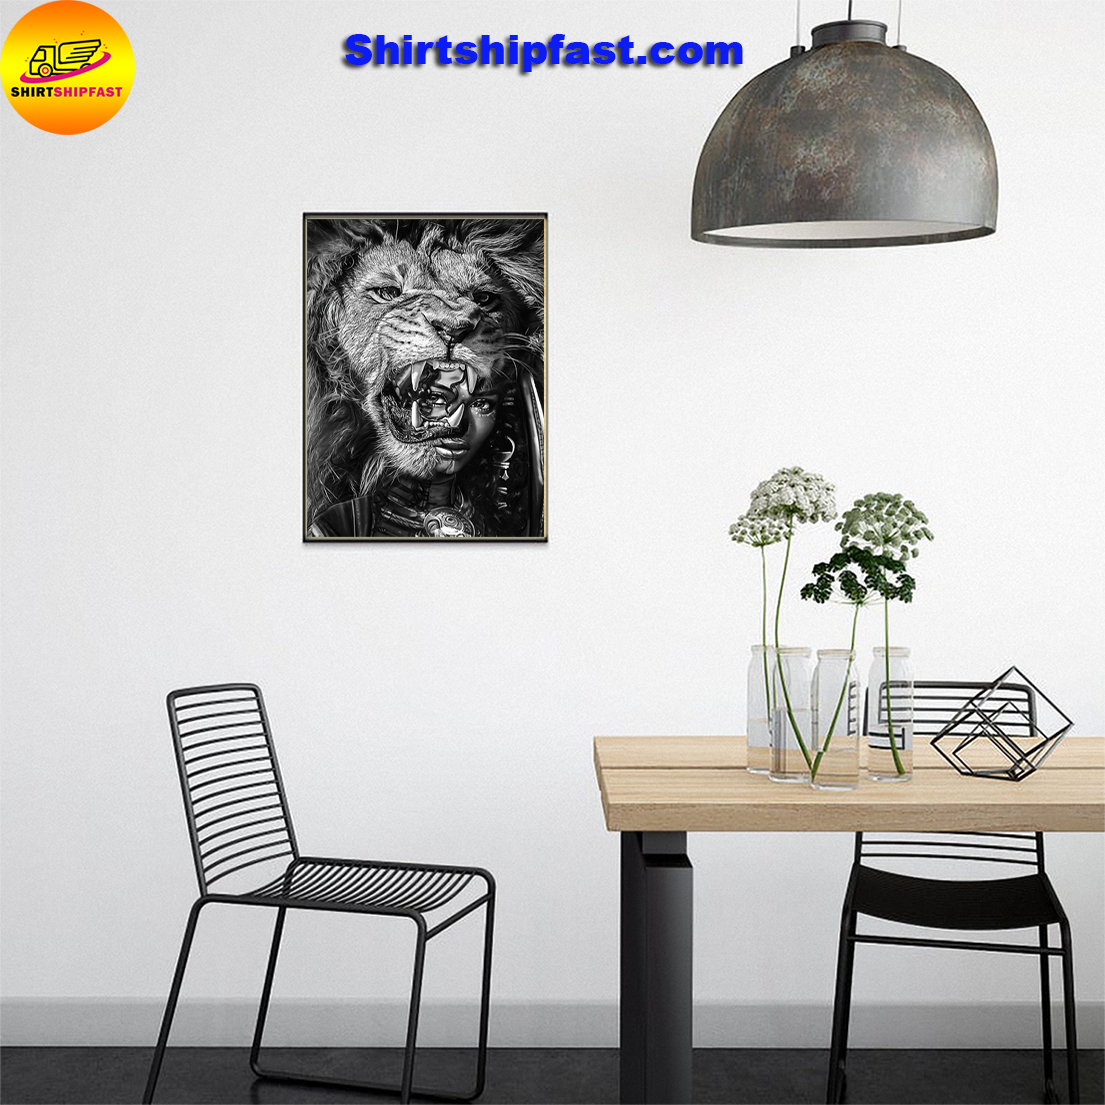 Black girl with lion poster - Picture 1